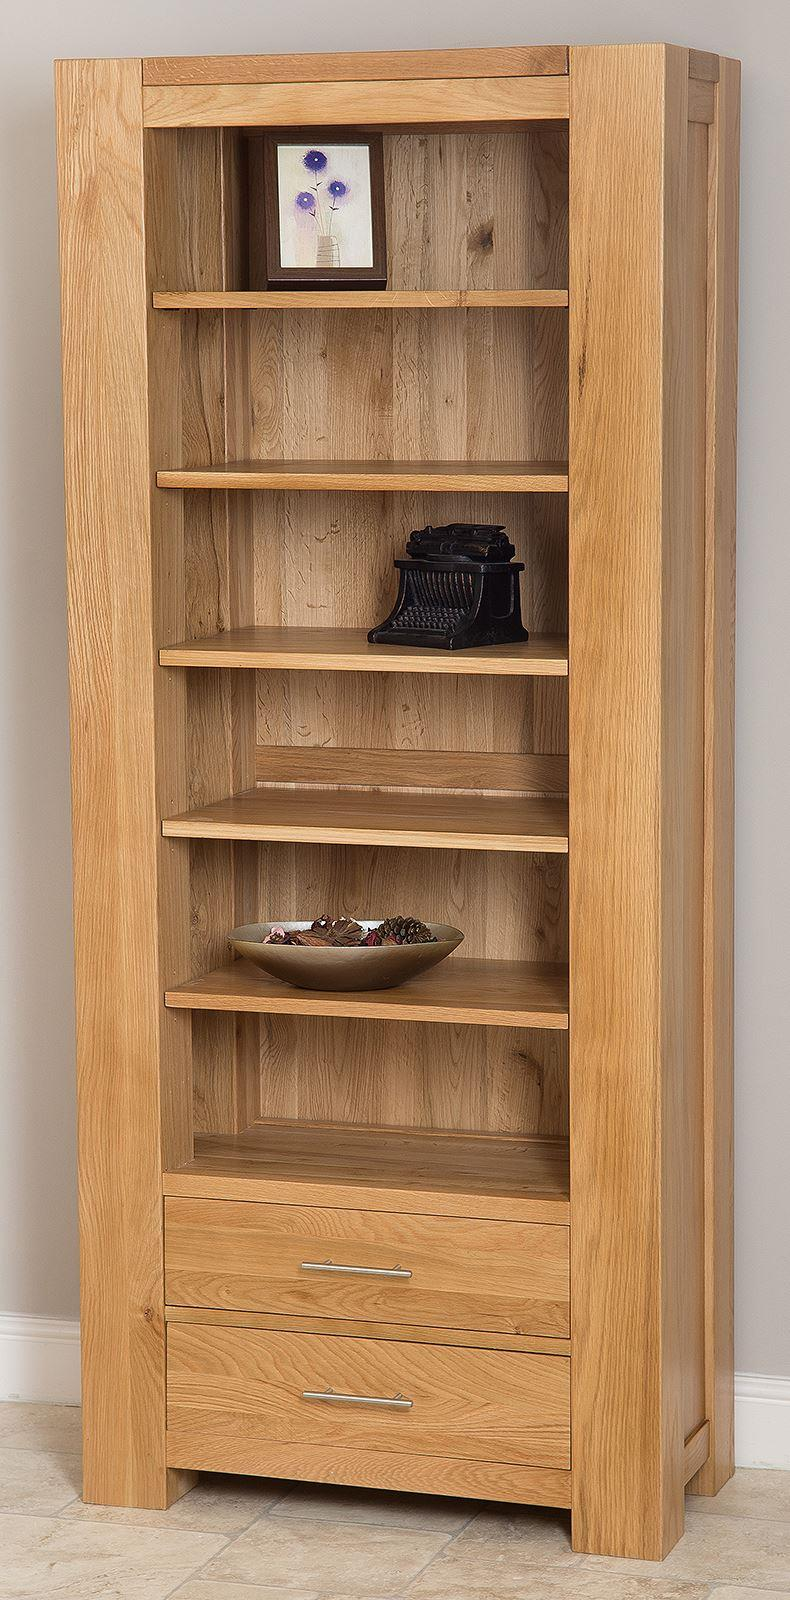 Kuba Solid Oak 2 Drawer Large Bookcase